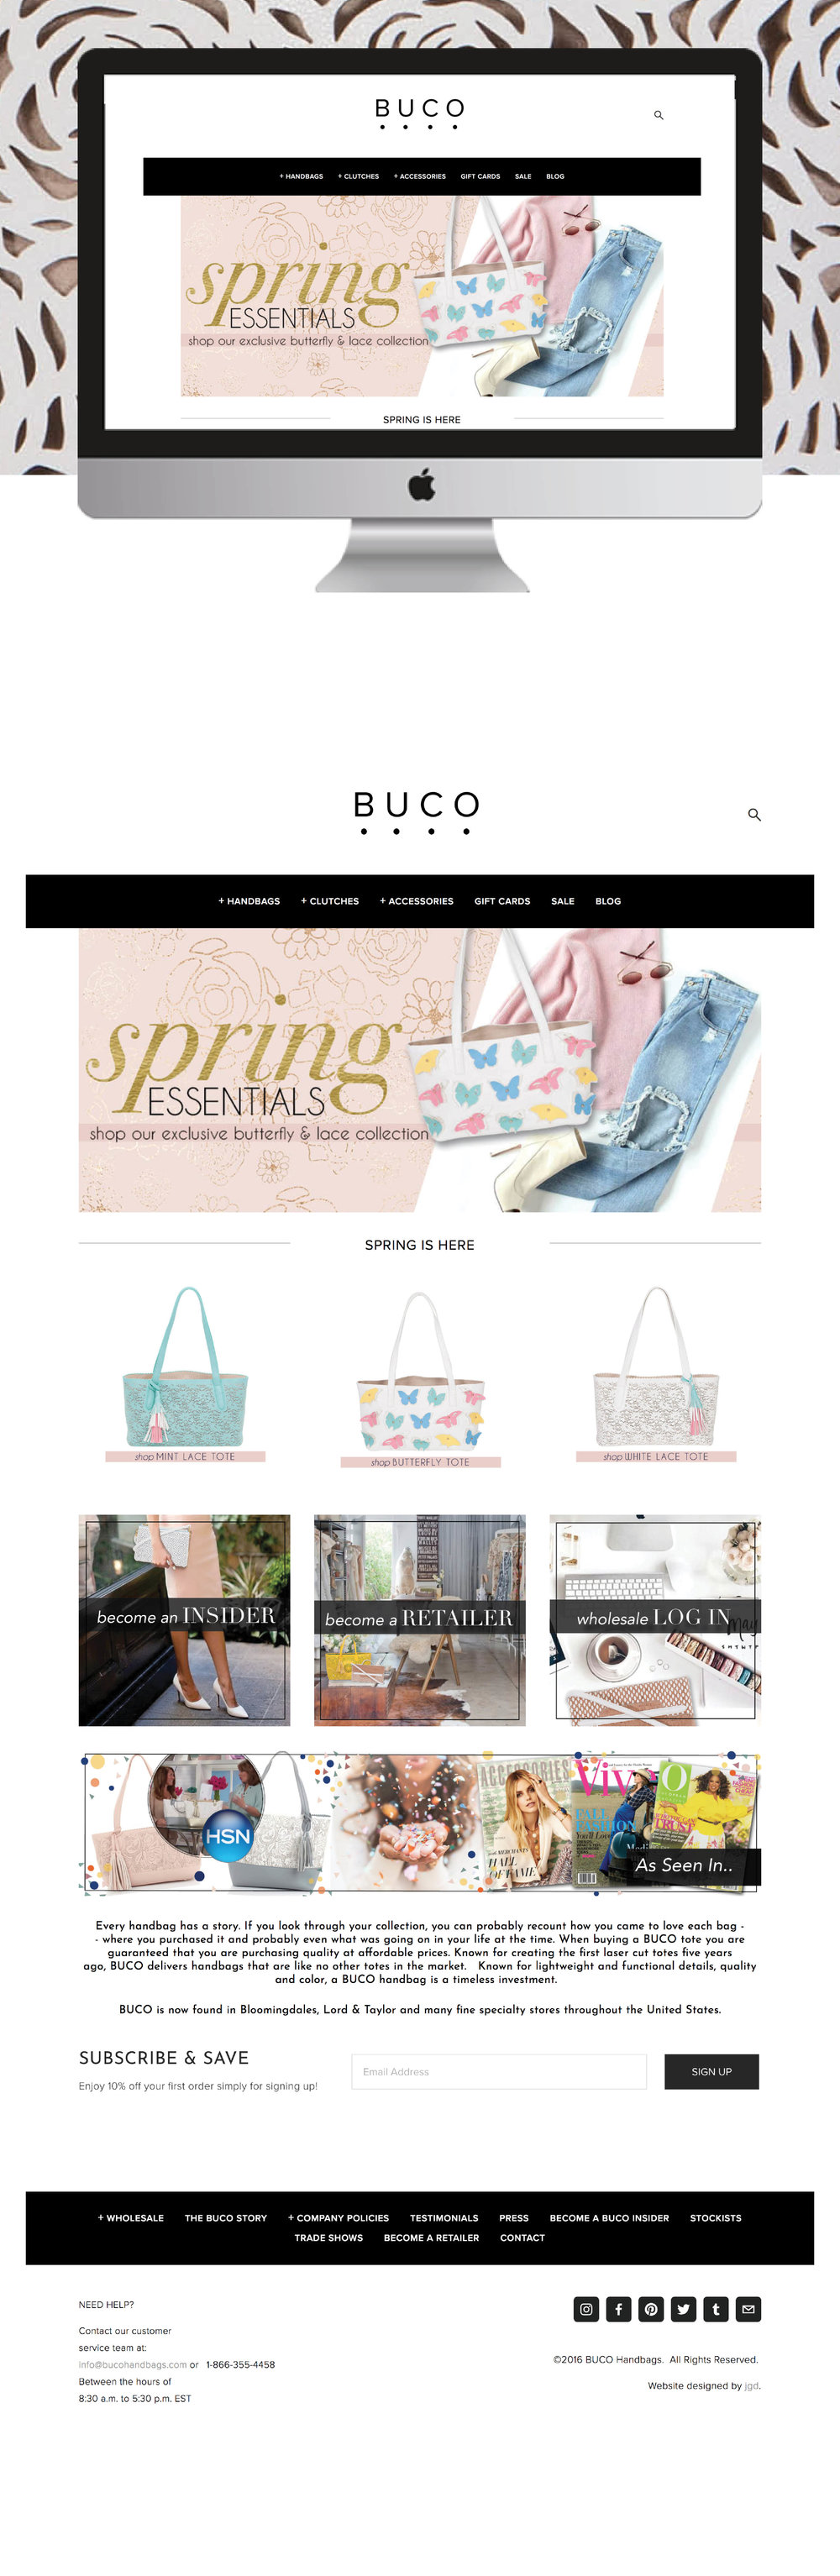 Retail Handbag Website | Custom Squarespace Web Design for BUCO Handbags by jgdigital.co